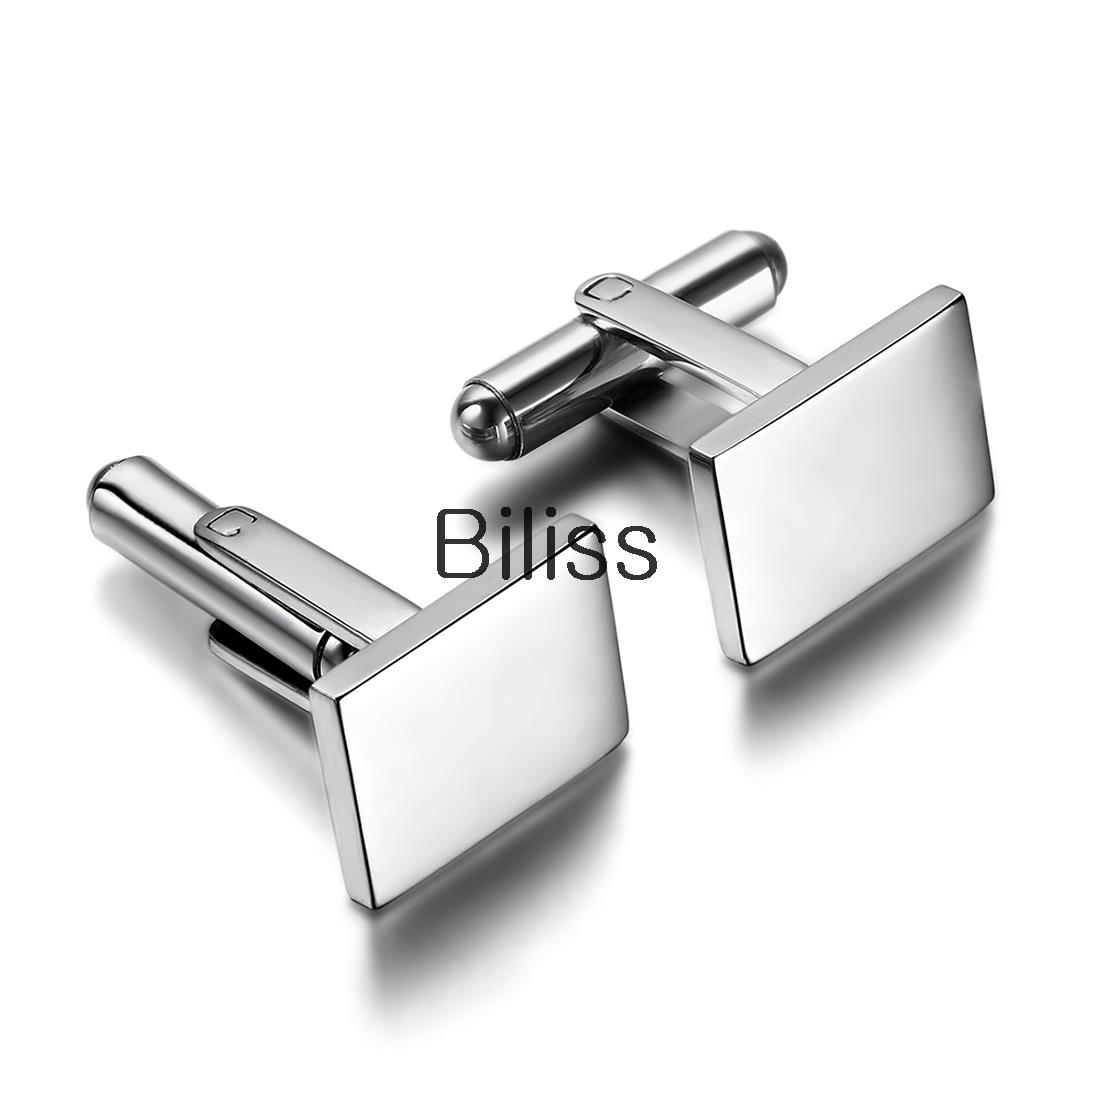 New Arrivals 2pcs of Polished Stainless Steel Men Cuff Link Cufflinks white Square Shirt Wedding Jewelry (with Gift Bag)(China (Mainland))